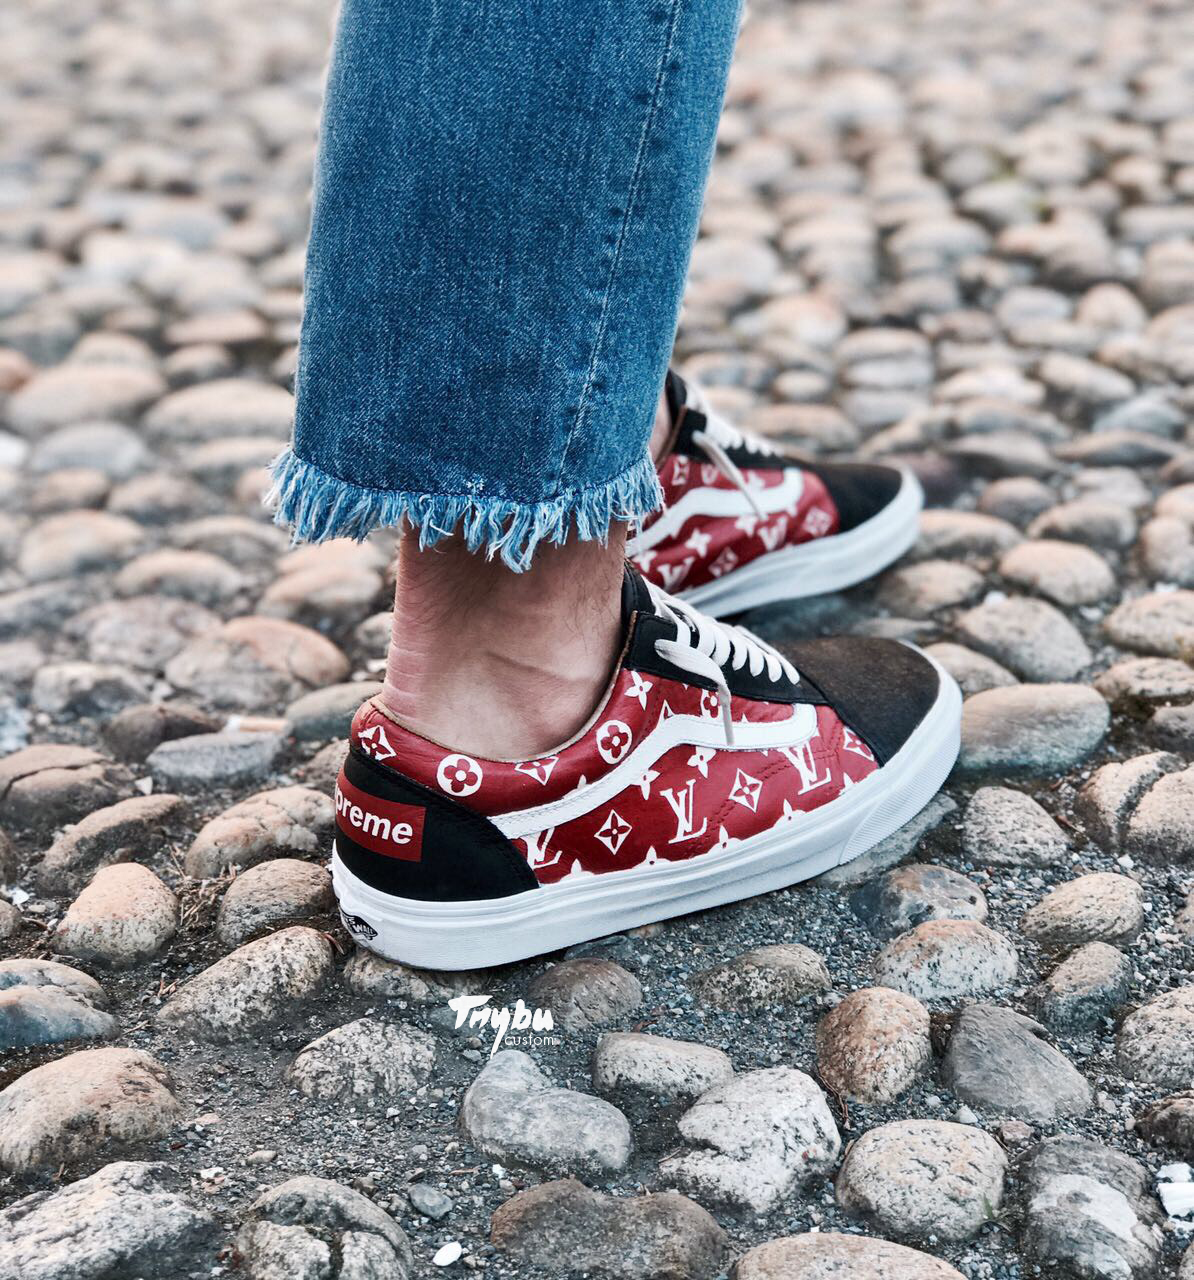 021c94527142 By Trybu — Vans Old Skool Louis Vuitton x Supreme (custom)